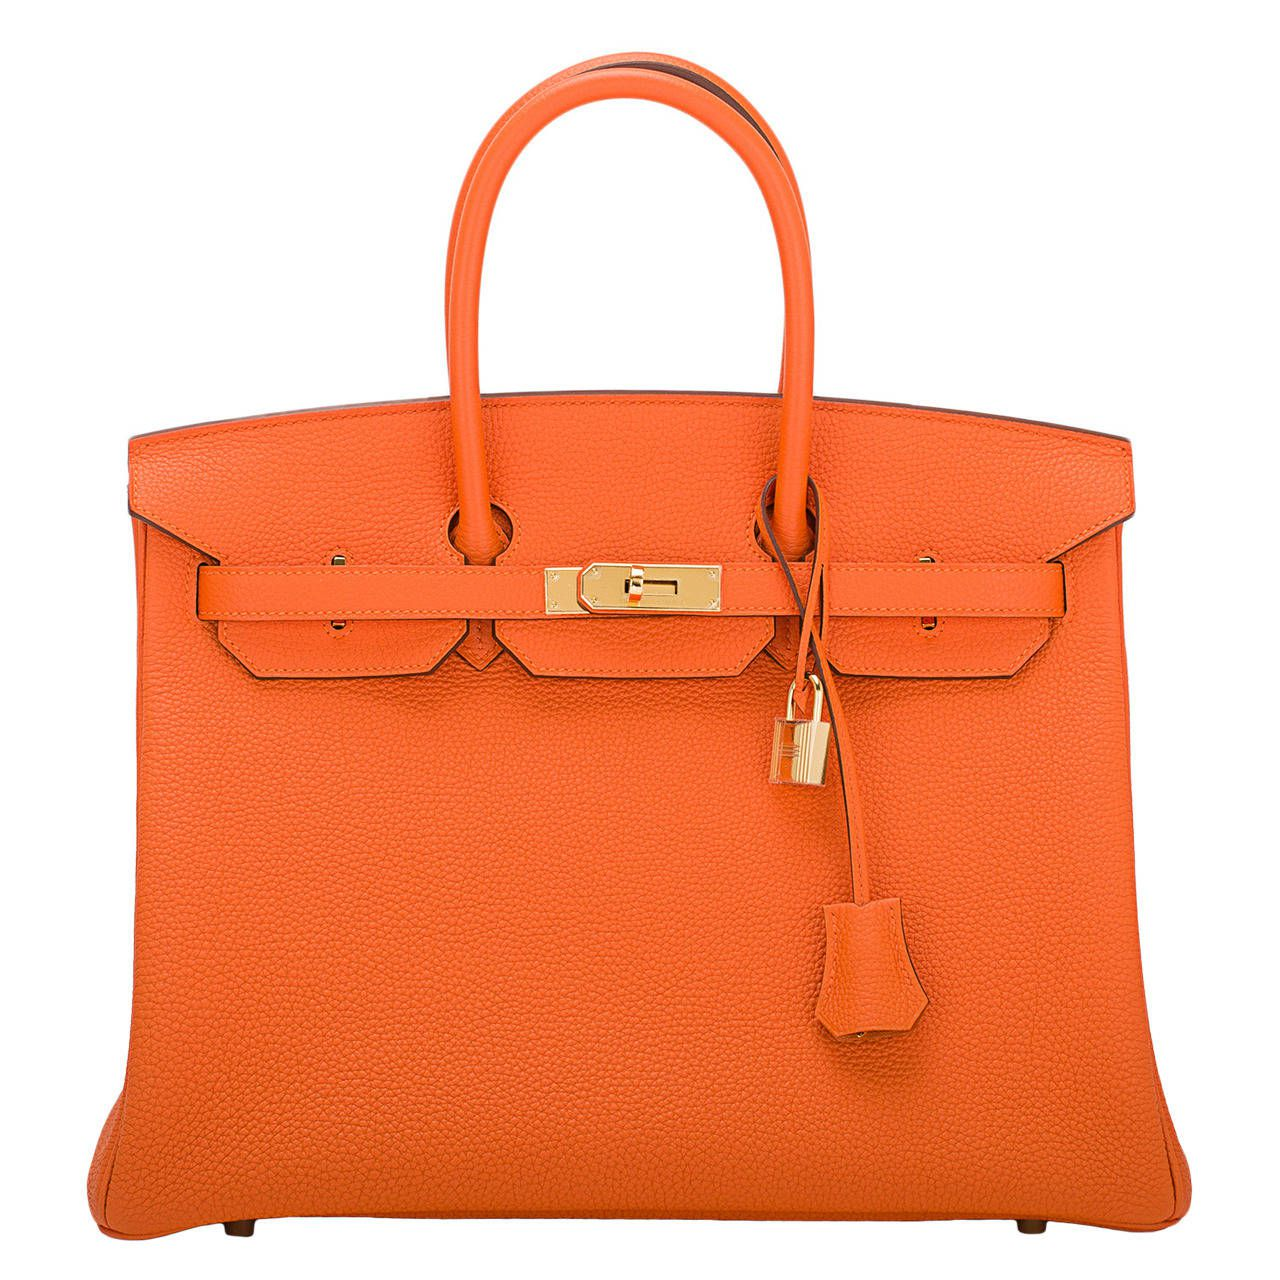 hermes birkin bag replica - Hermes Birkin Prices USA vs. Europe - PurseBop